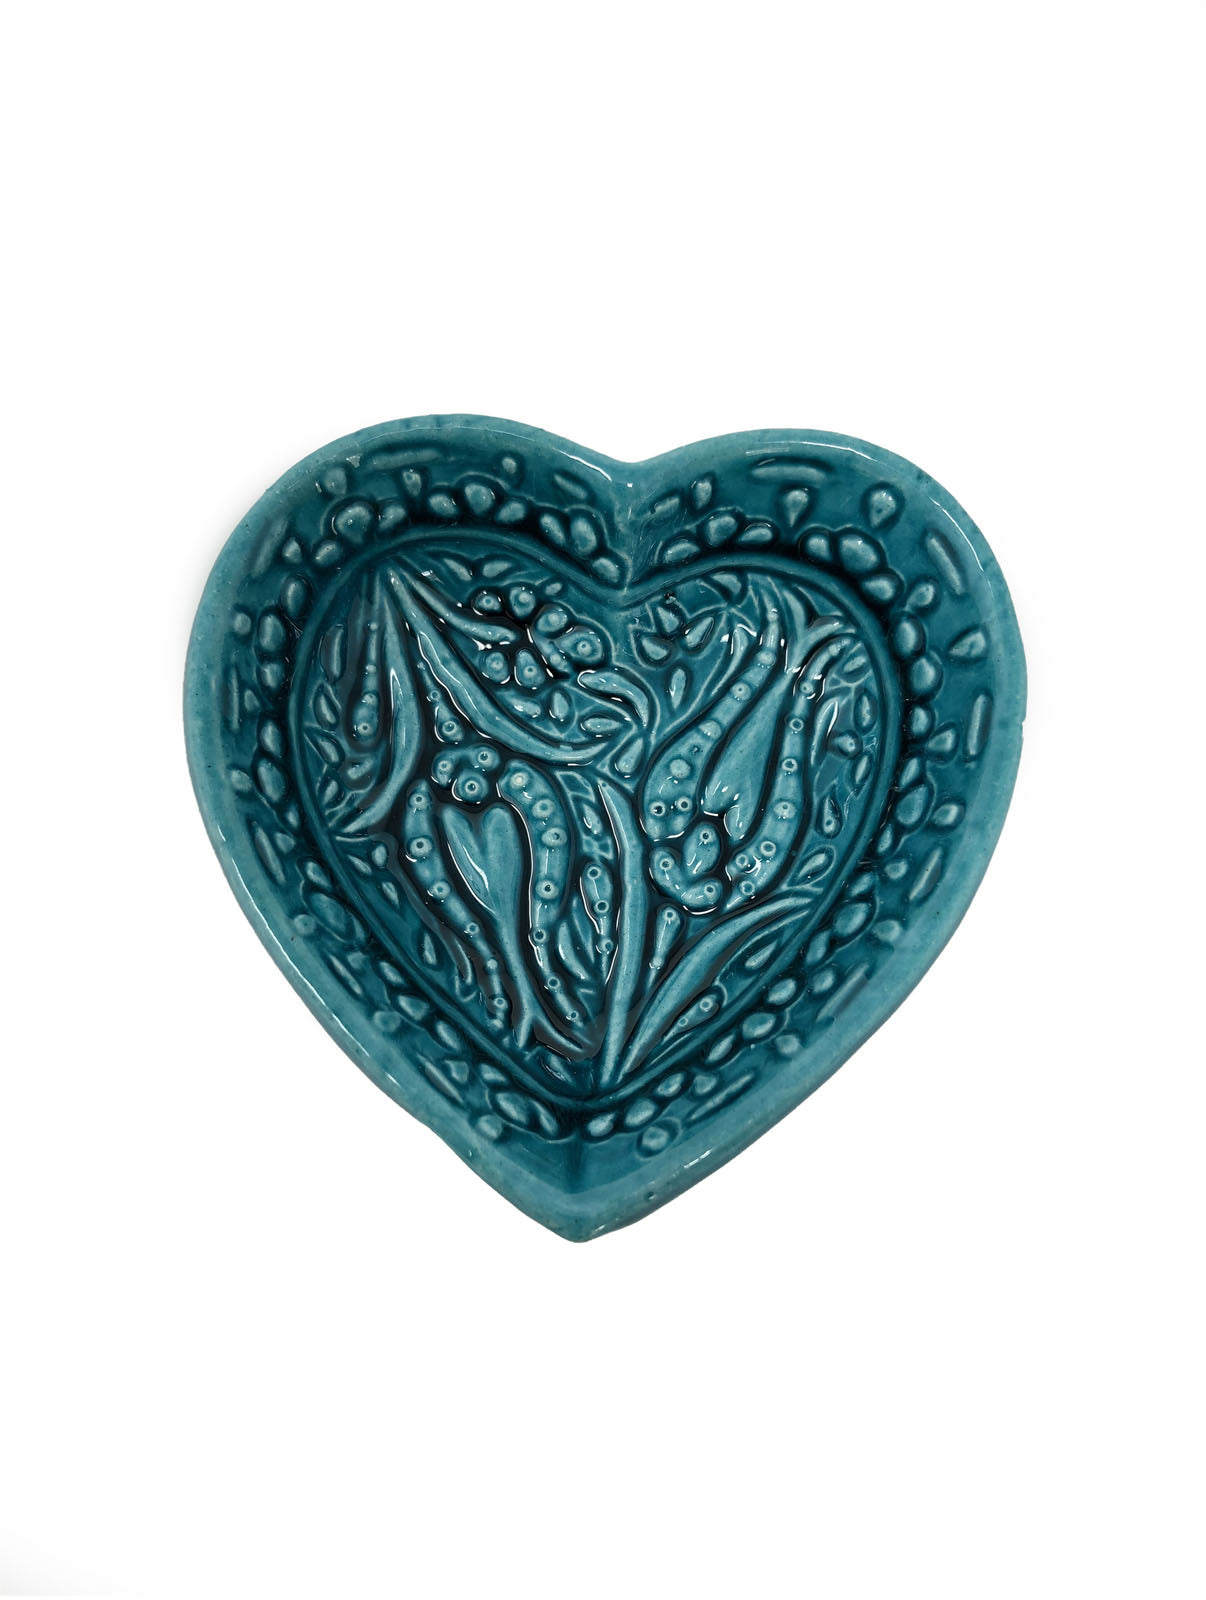 Ozel Handmade Ceramic Collection 8cm Heart Shaped Bowl Turquoise